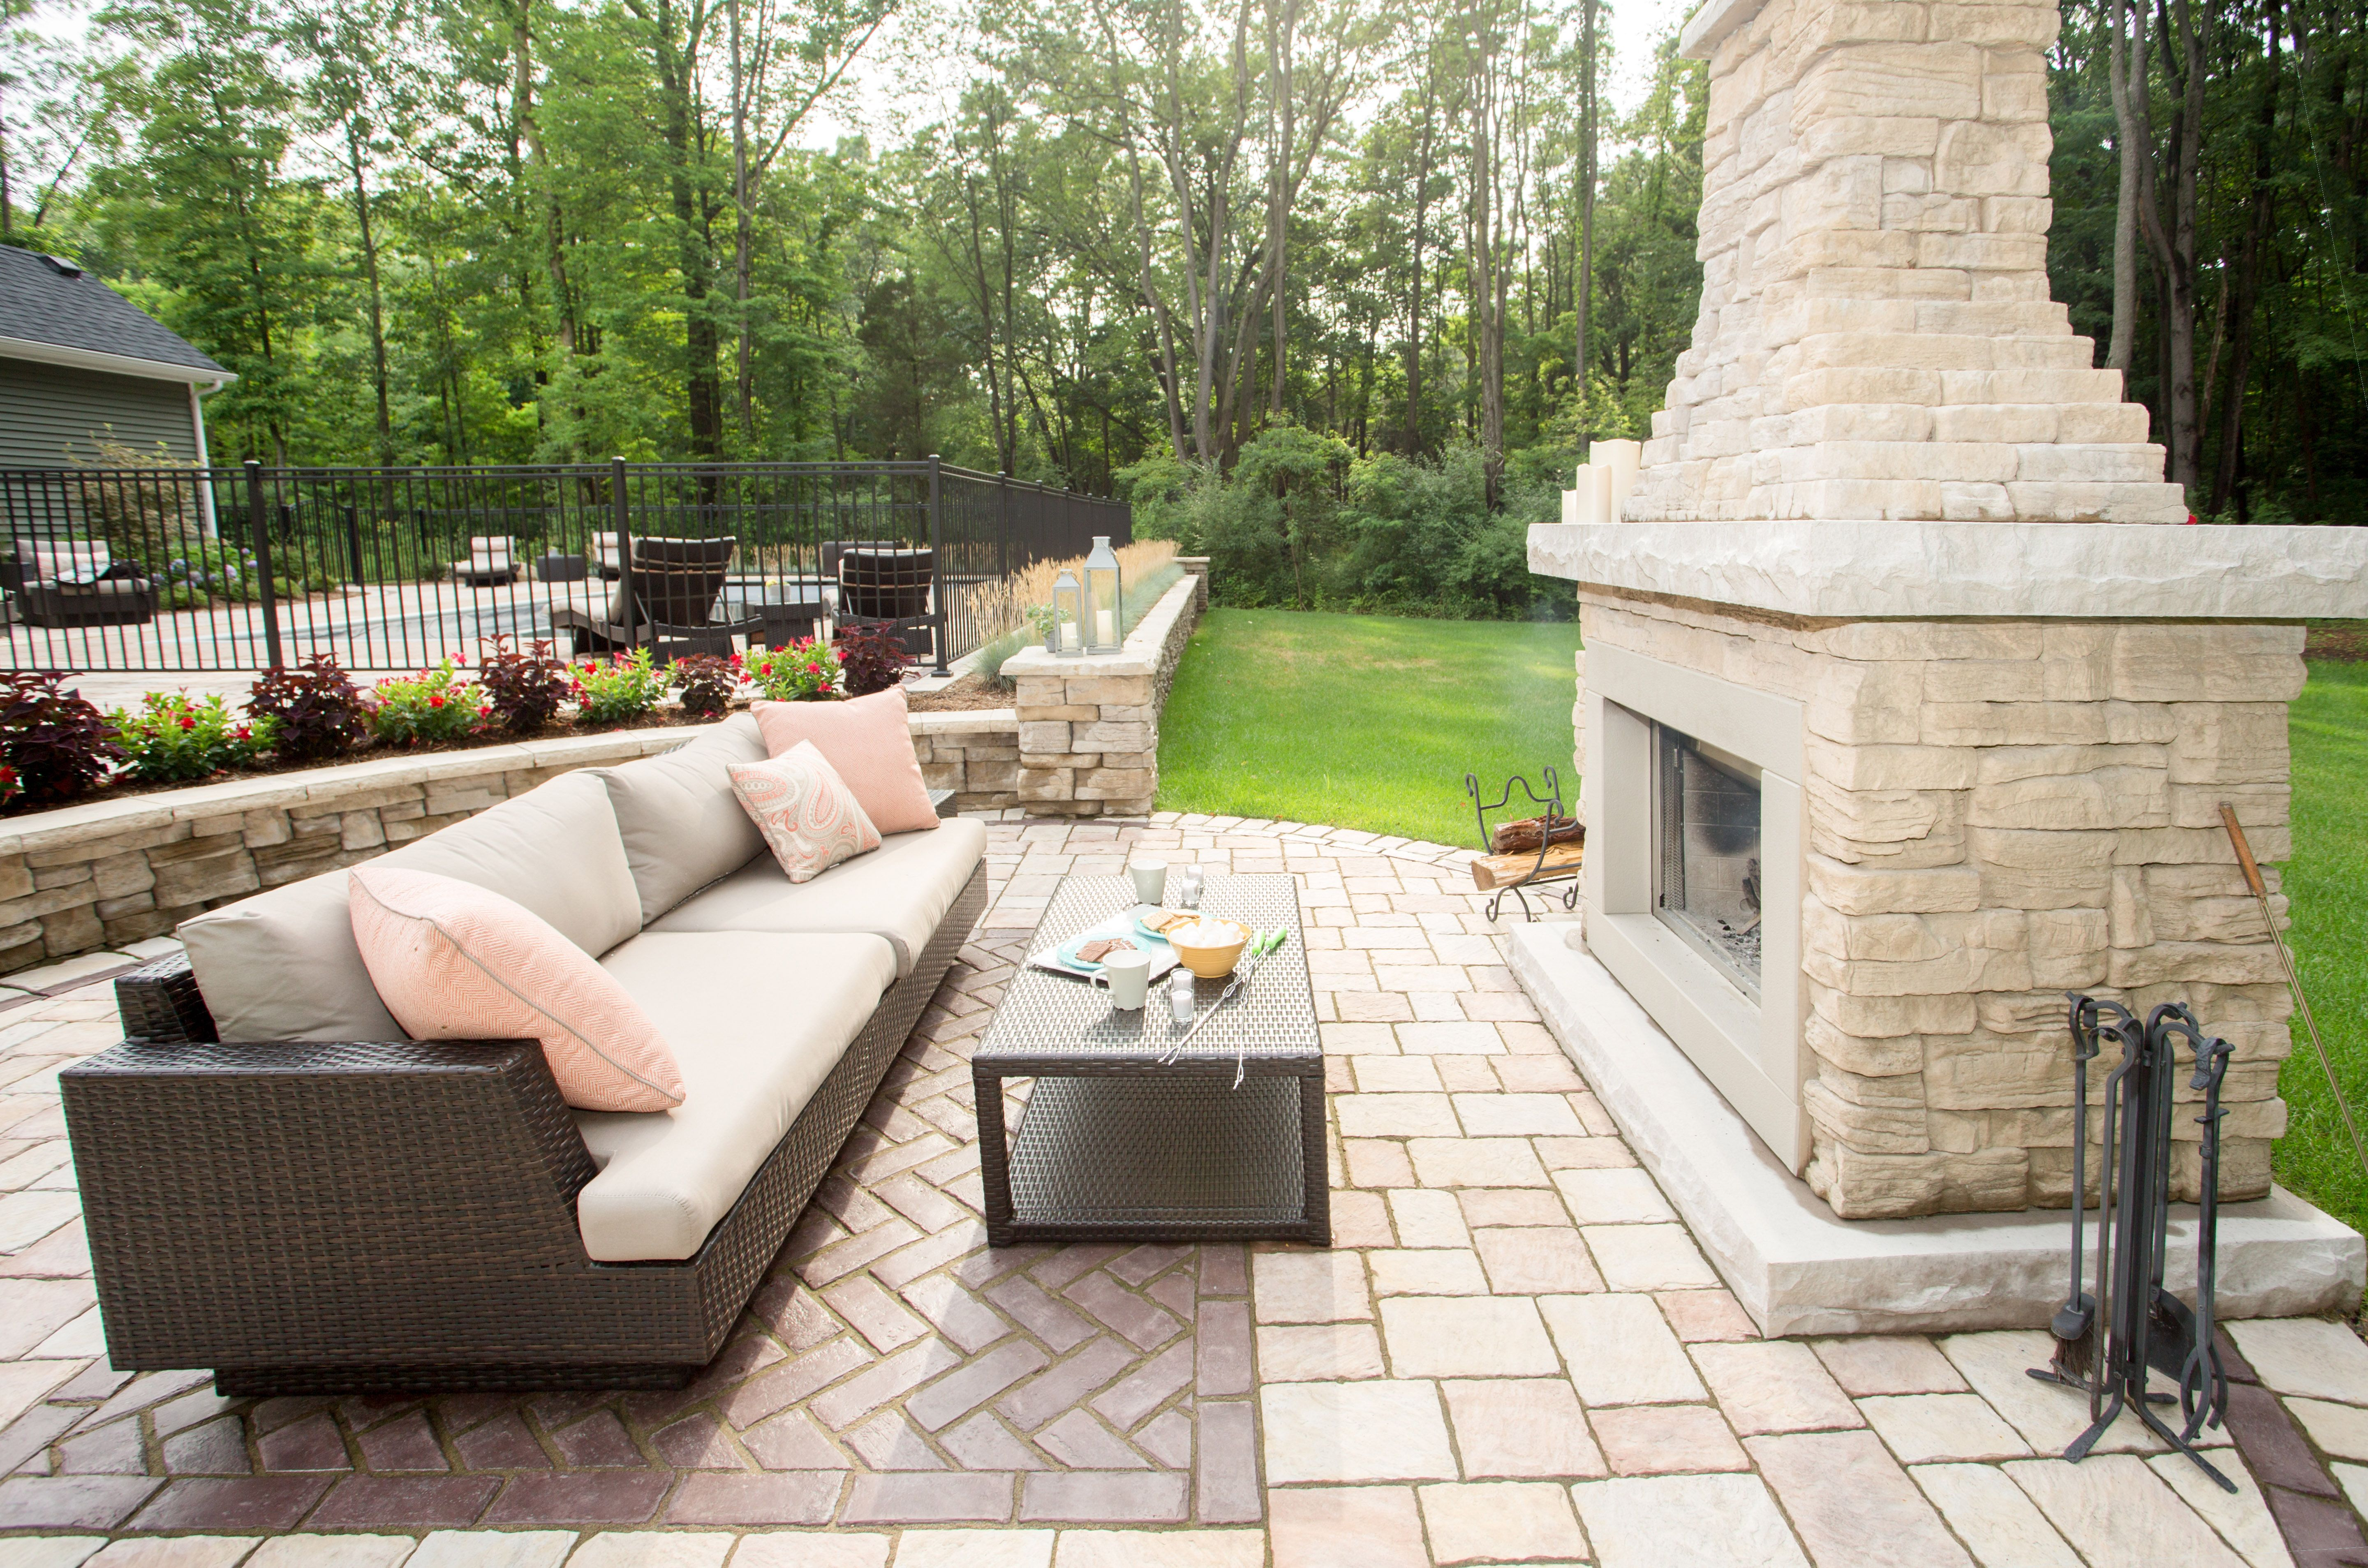 Outdoor couch next to a warm Belvedere Fireplace